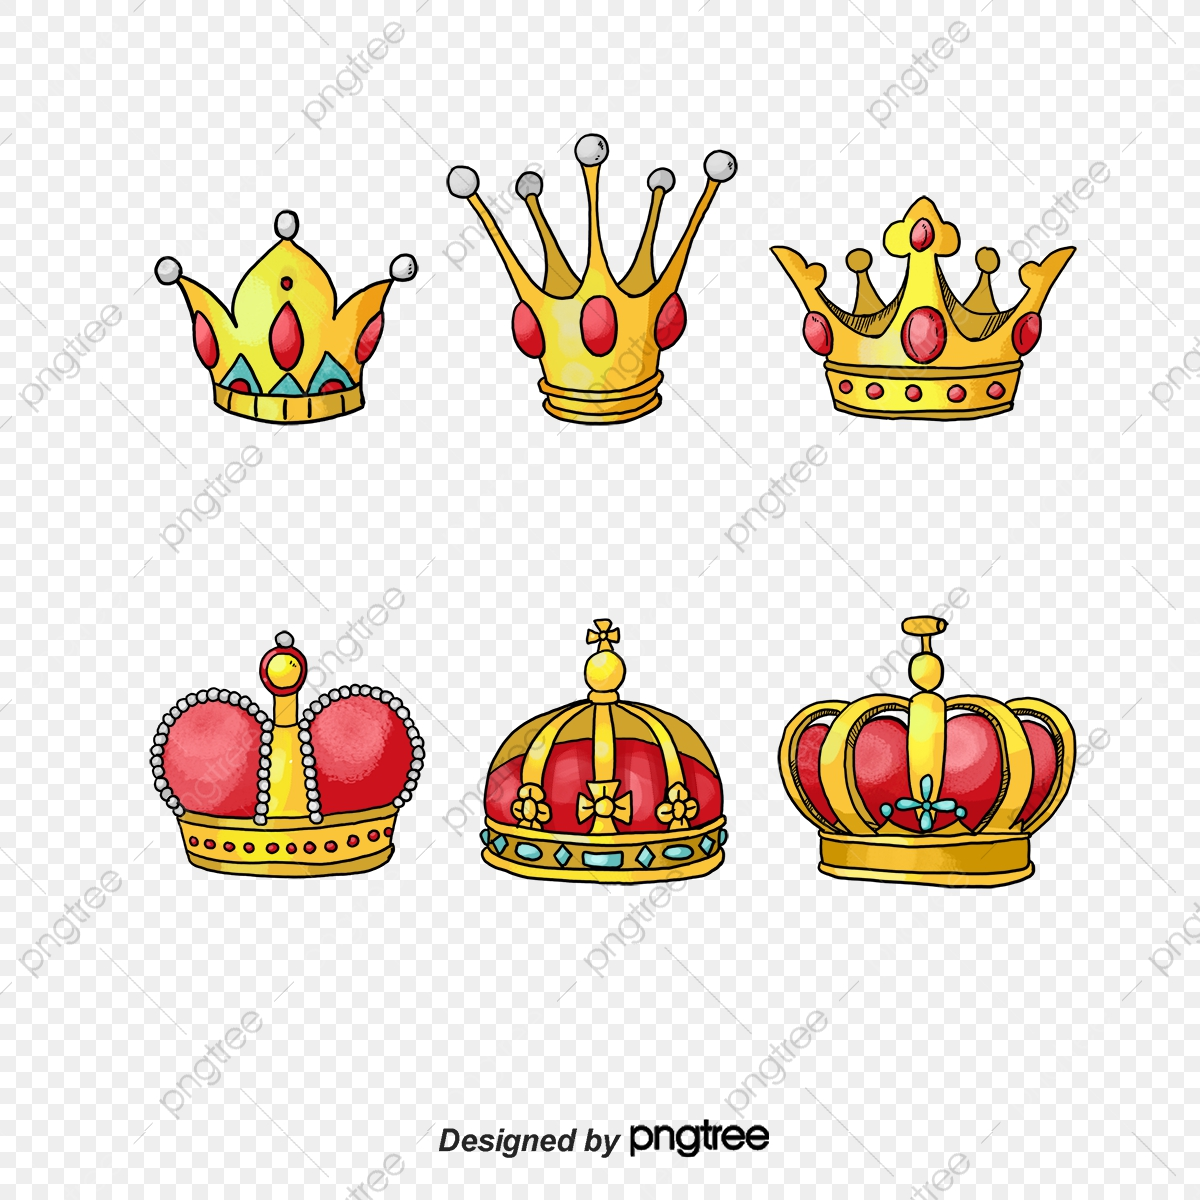 Gold European Graffiti Crown Crown Clipart Cartoon Hand Drawing Golden Png Transparent Clipart Image And Psd File For Free Download Simple graffiti crowning, elegant queen or. https pngtree com freepng gold european graffiti crown 3493812 html